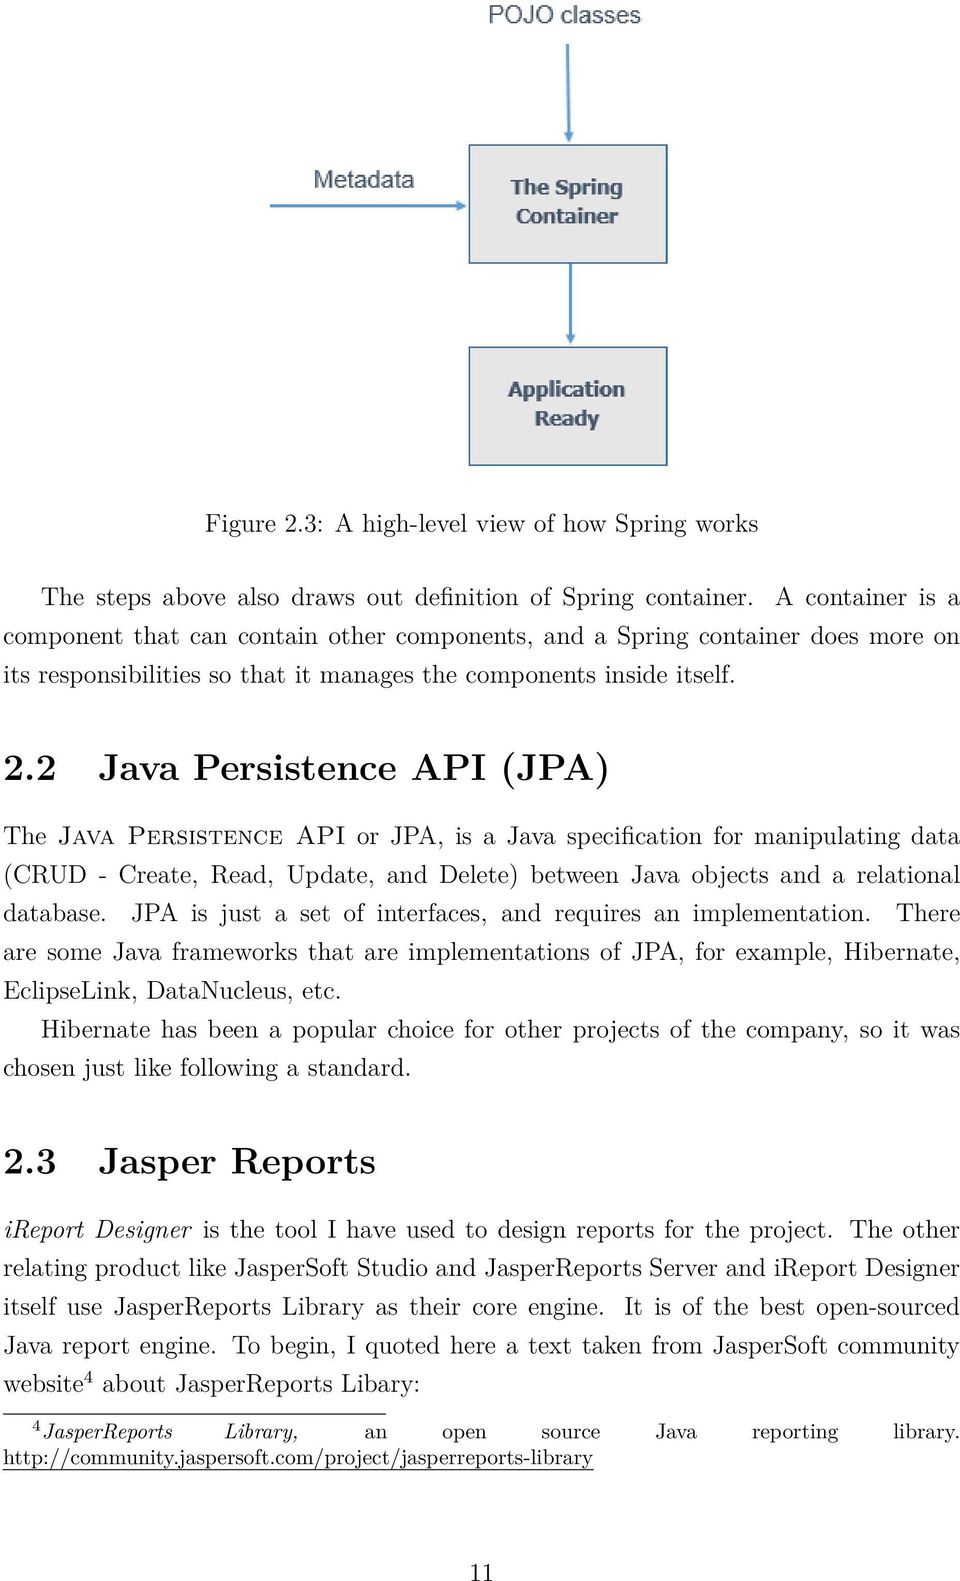 2 Java Persistence API (JPA) The Java Persistence API or JPA, is a Java specification for manipulating data (CRUD - Create, Read, Update, and Delete) between Java objects and a relational database.